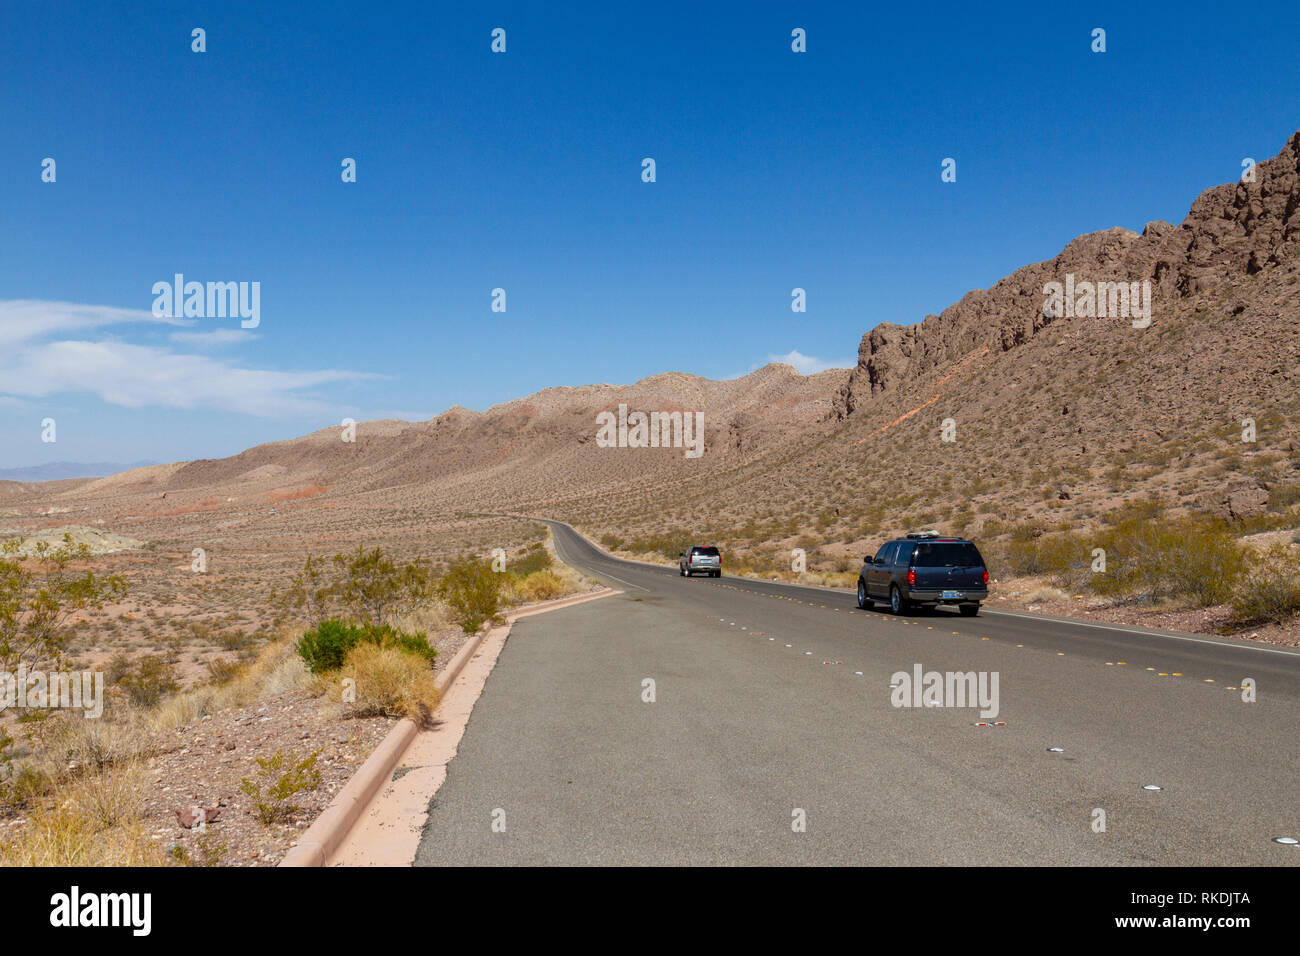 View down NV-167 (Northshore Road), Lake Mead Recreation Area, Nevada, United States. - Stock Image